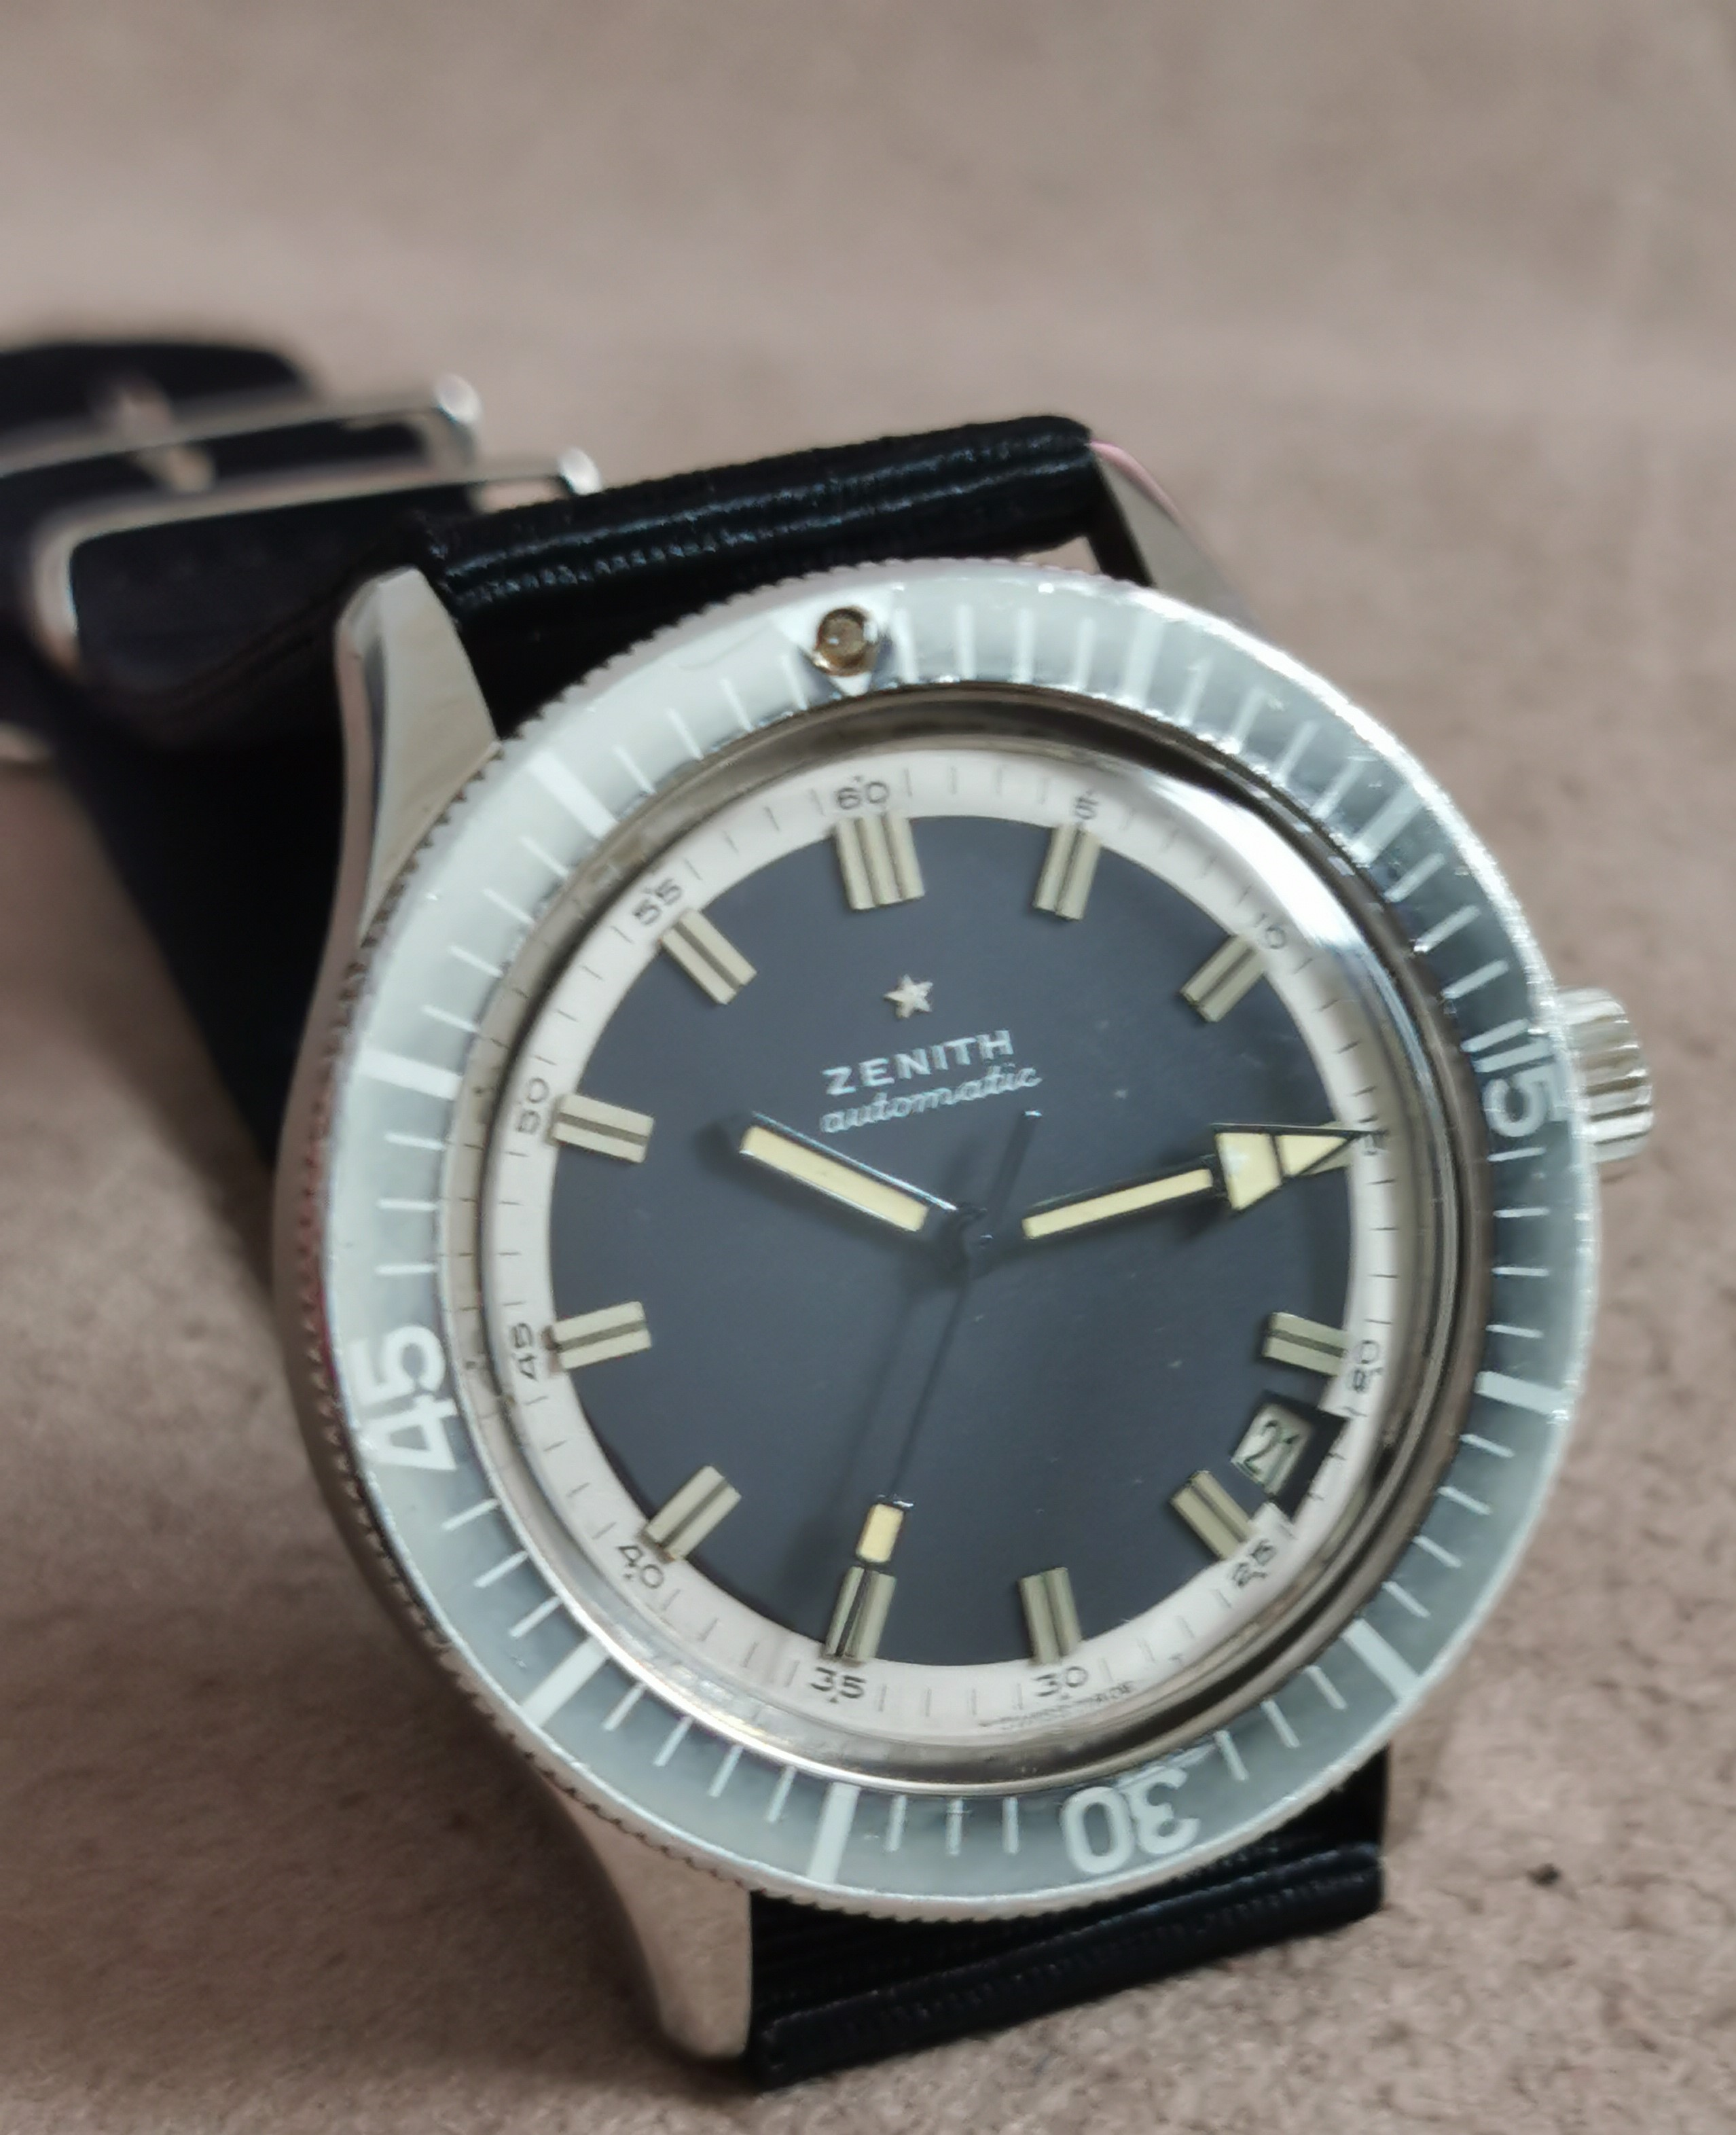 Zenith A3630 Diver 1969 automatic steel mm 38.5 ghost bezel black dial | San Giorgio a Cremano